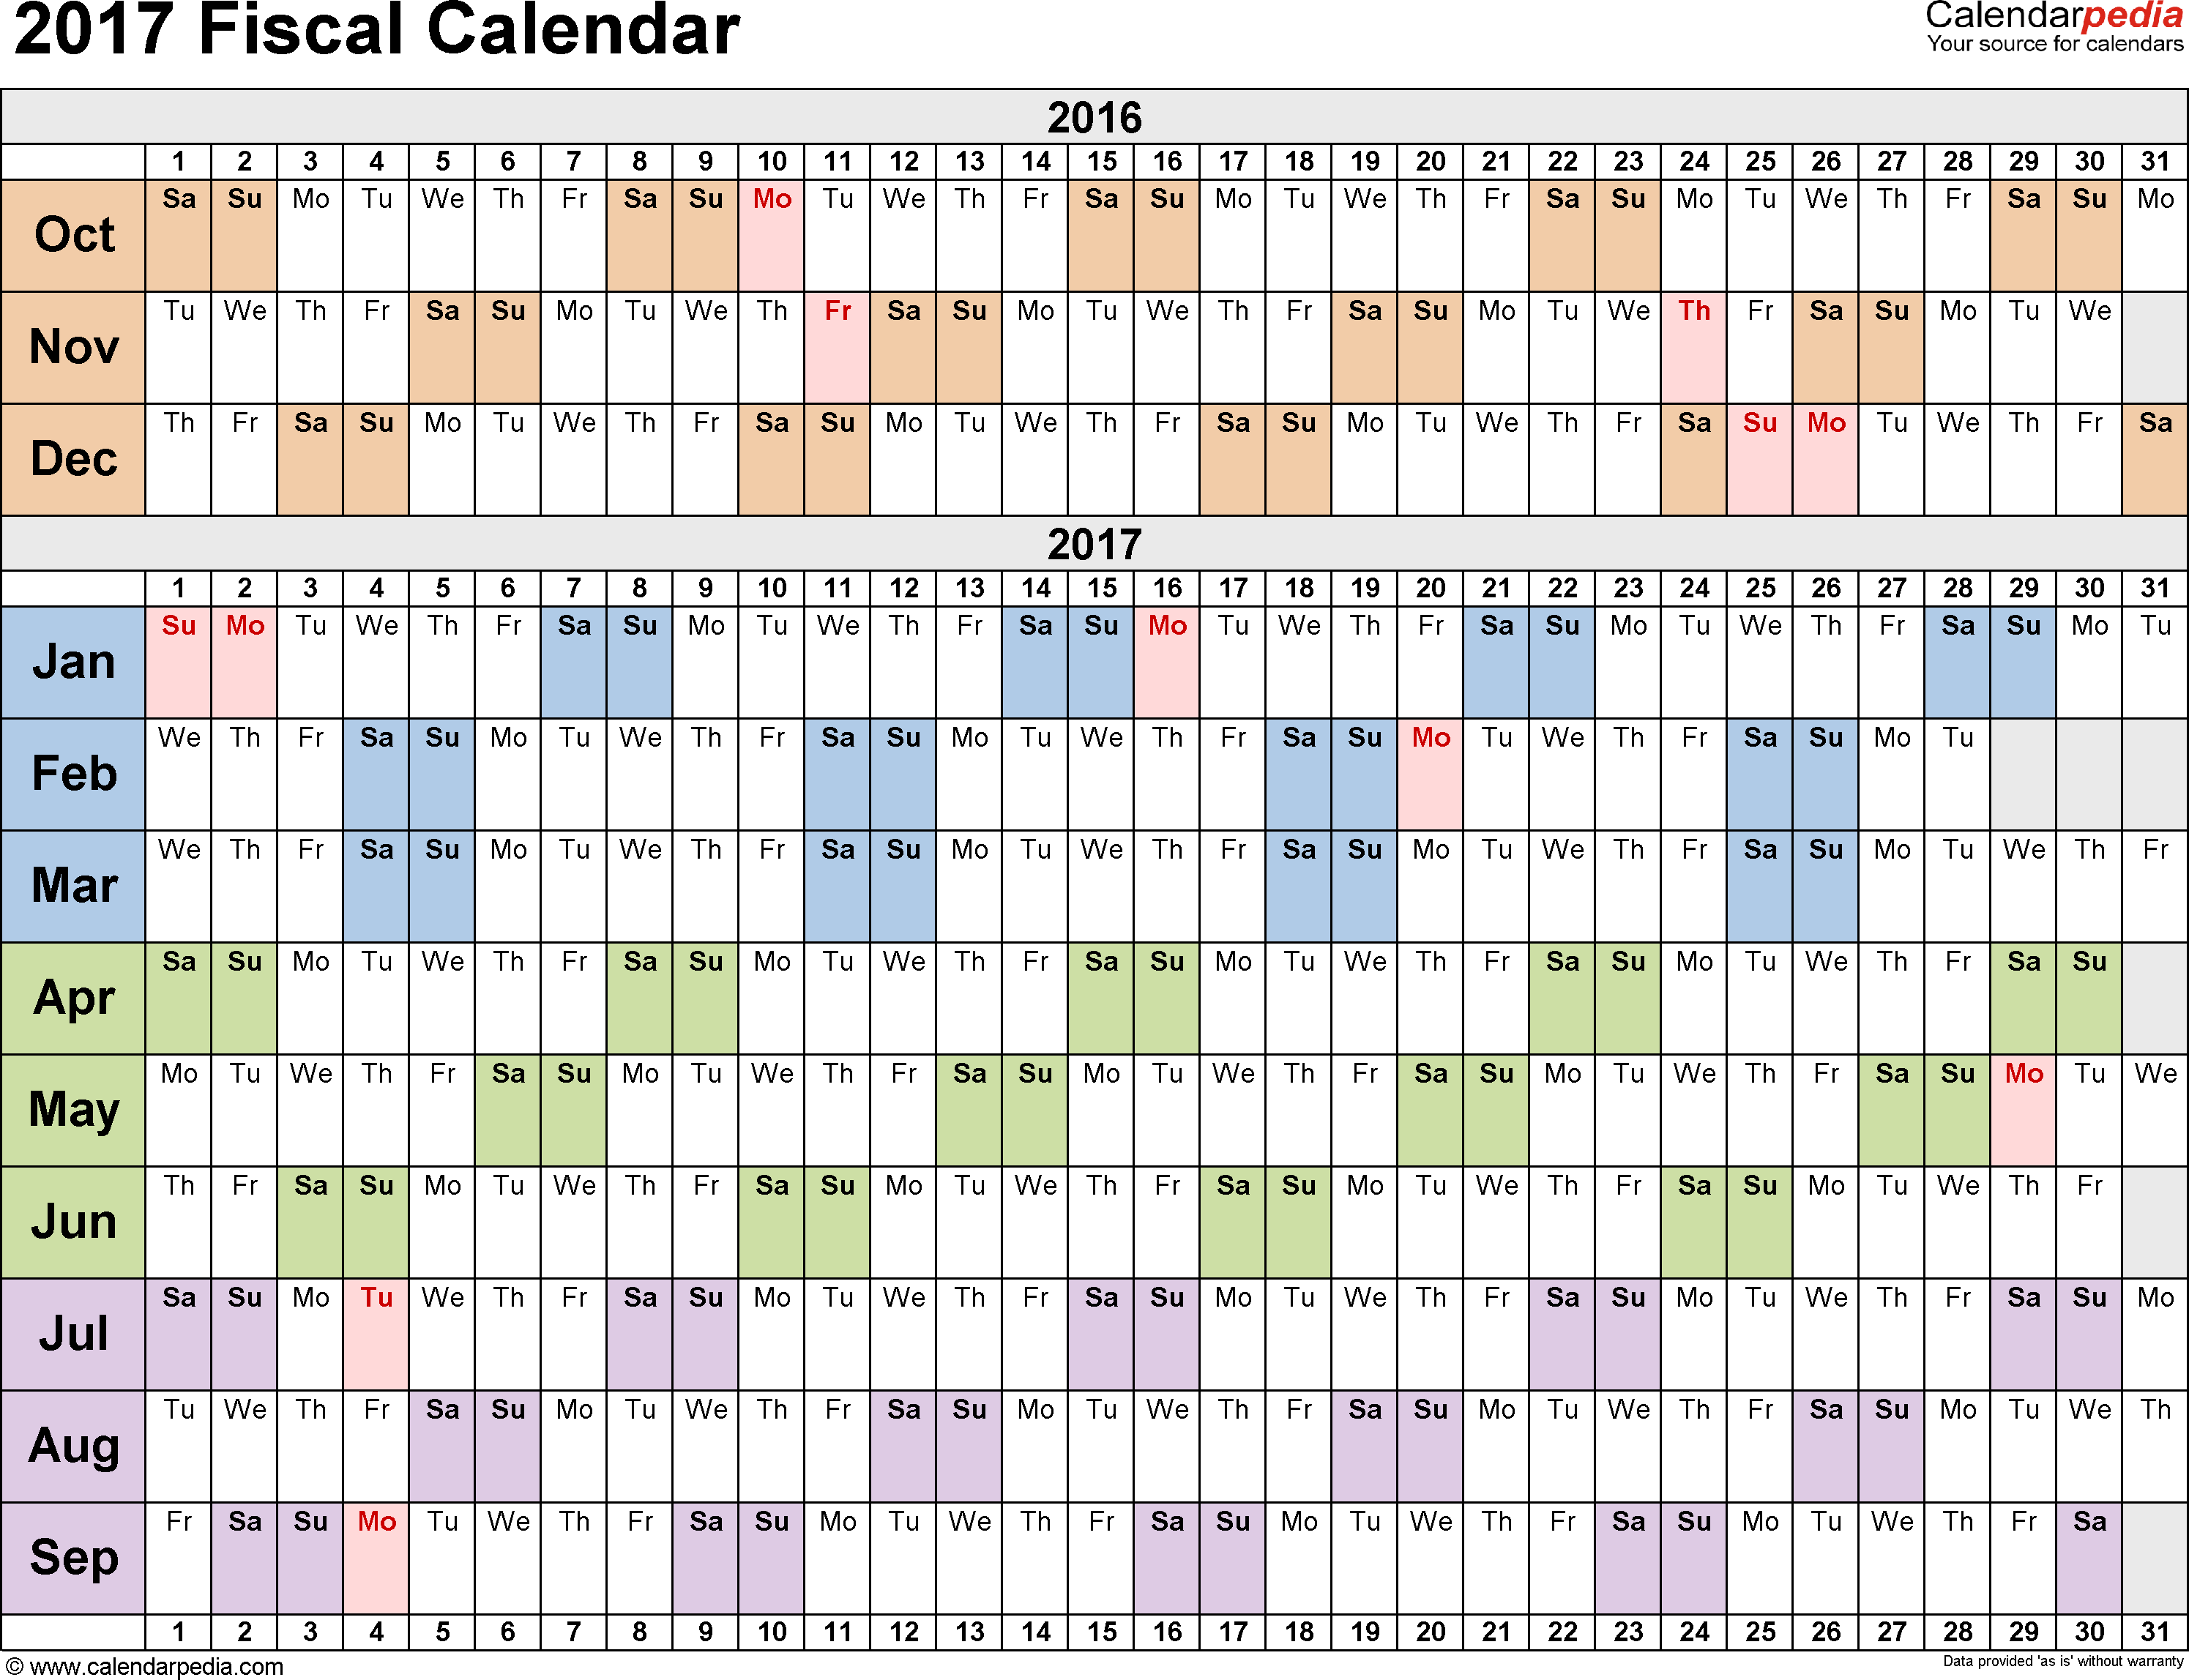 Calendar Year Number Of Days : Fiscal calendars as free printable pdf templates